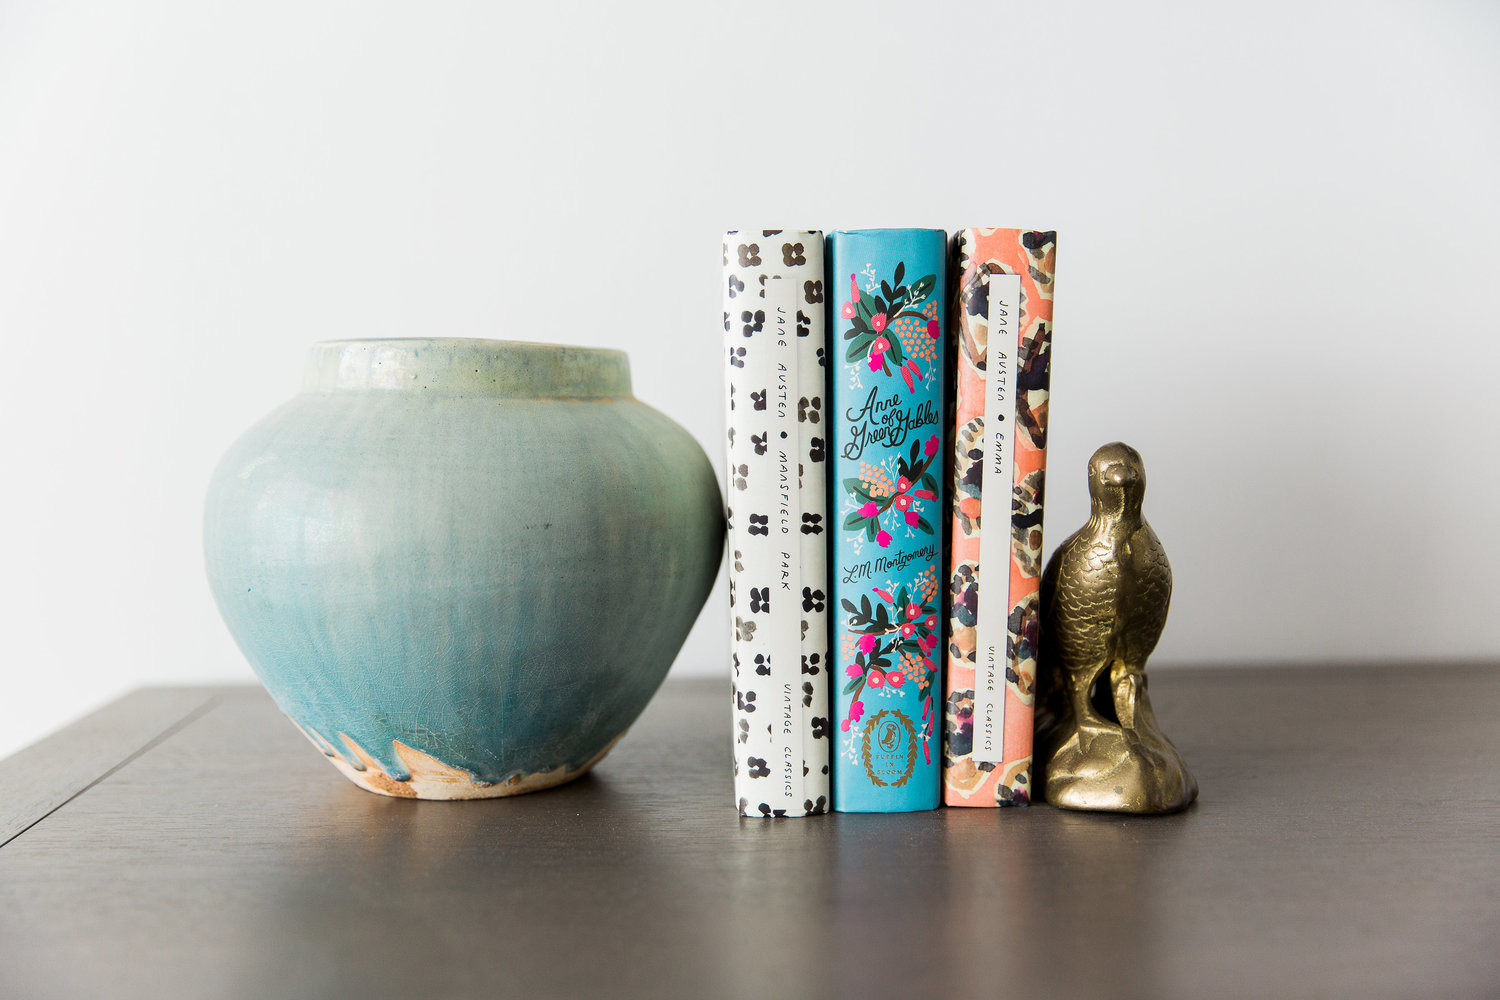 Books and vase on top of counter